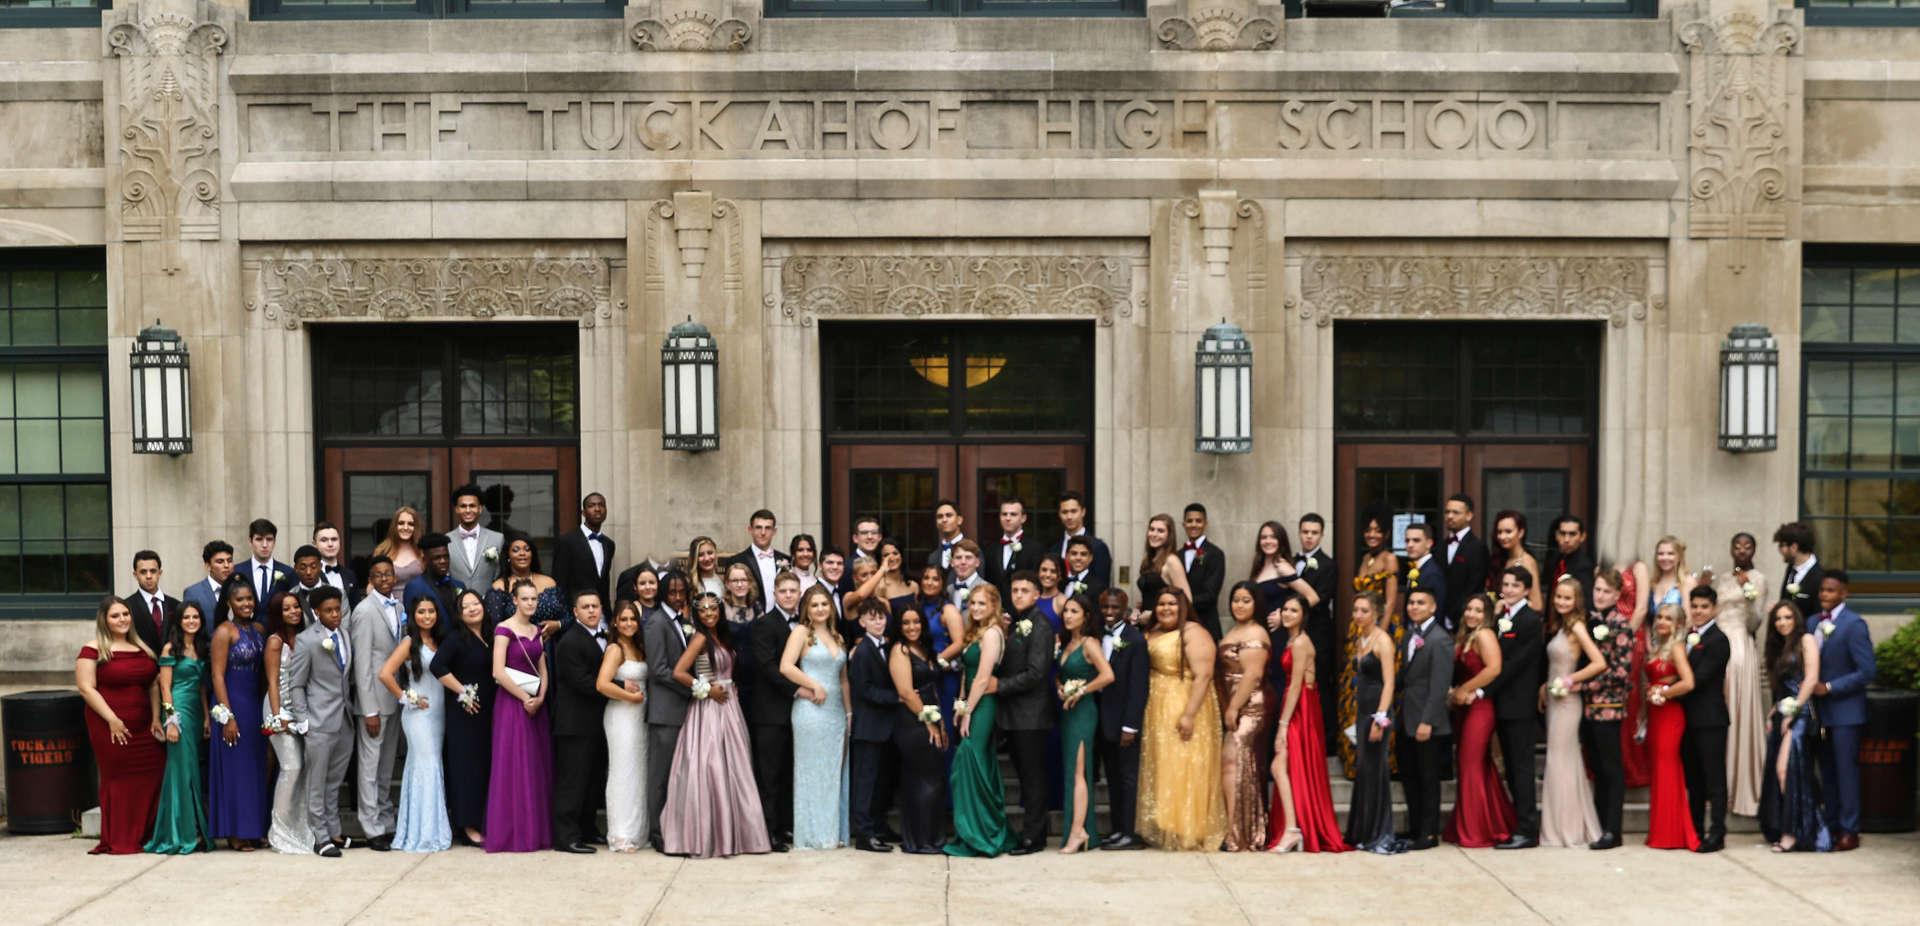 THS Seniors and their guests pose for the 2019 Prom in front of The Tuckahoe High School.